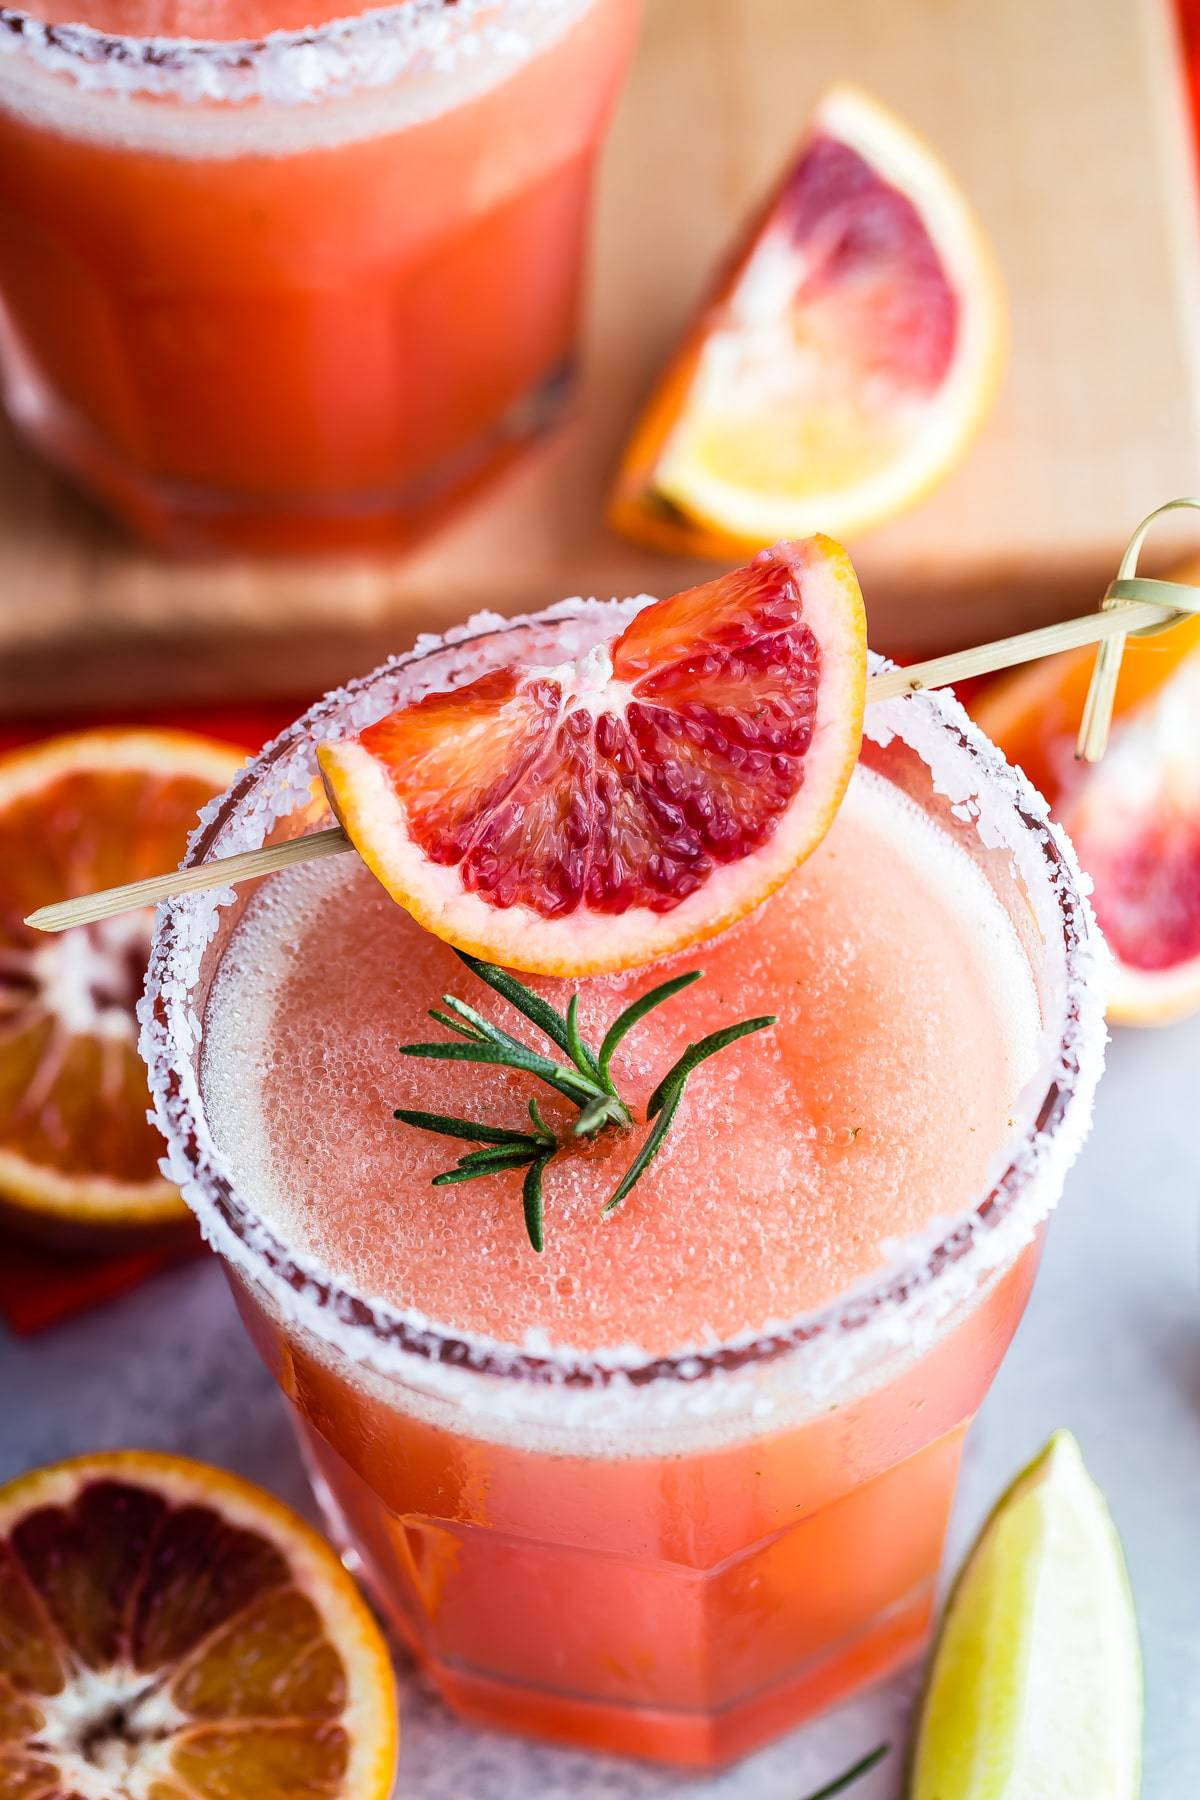 This blood orange margarita is sure to be a hit at your next summer party!